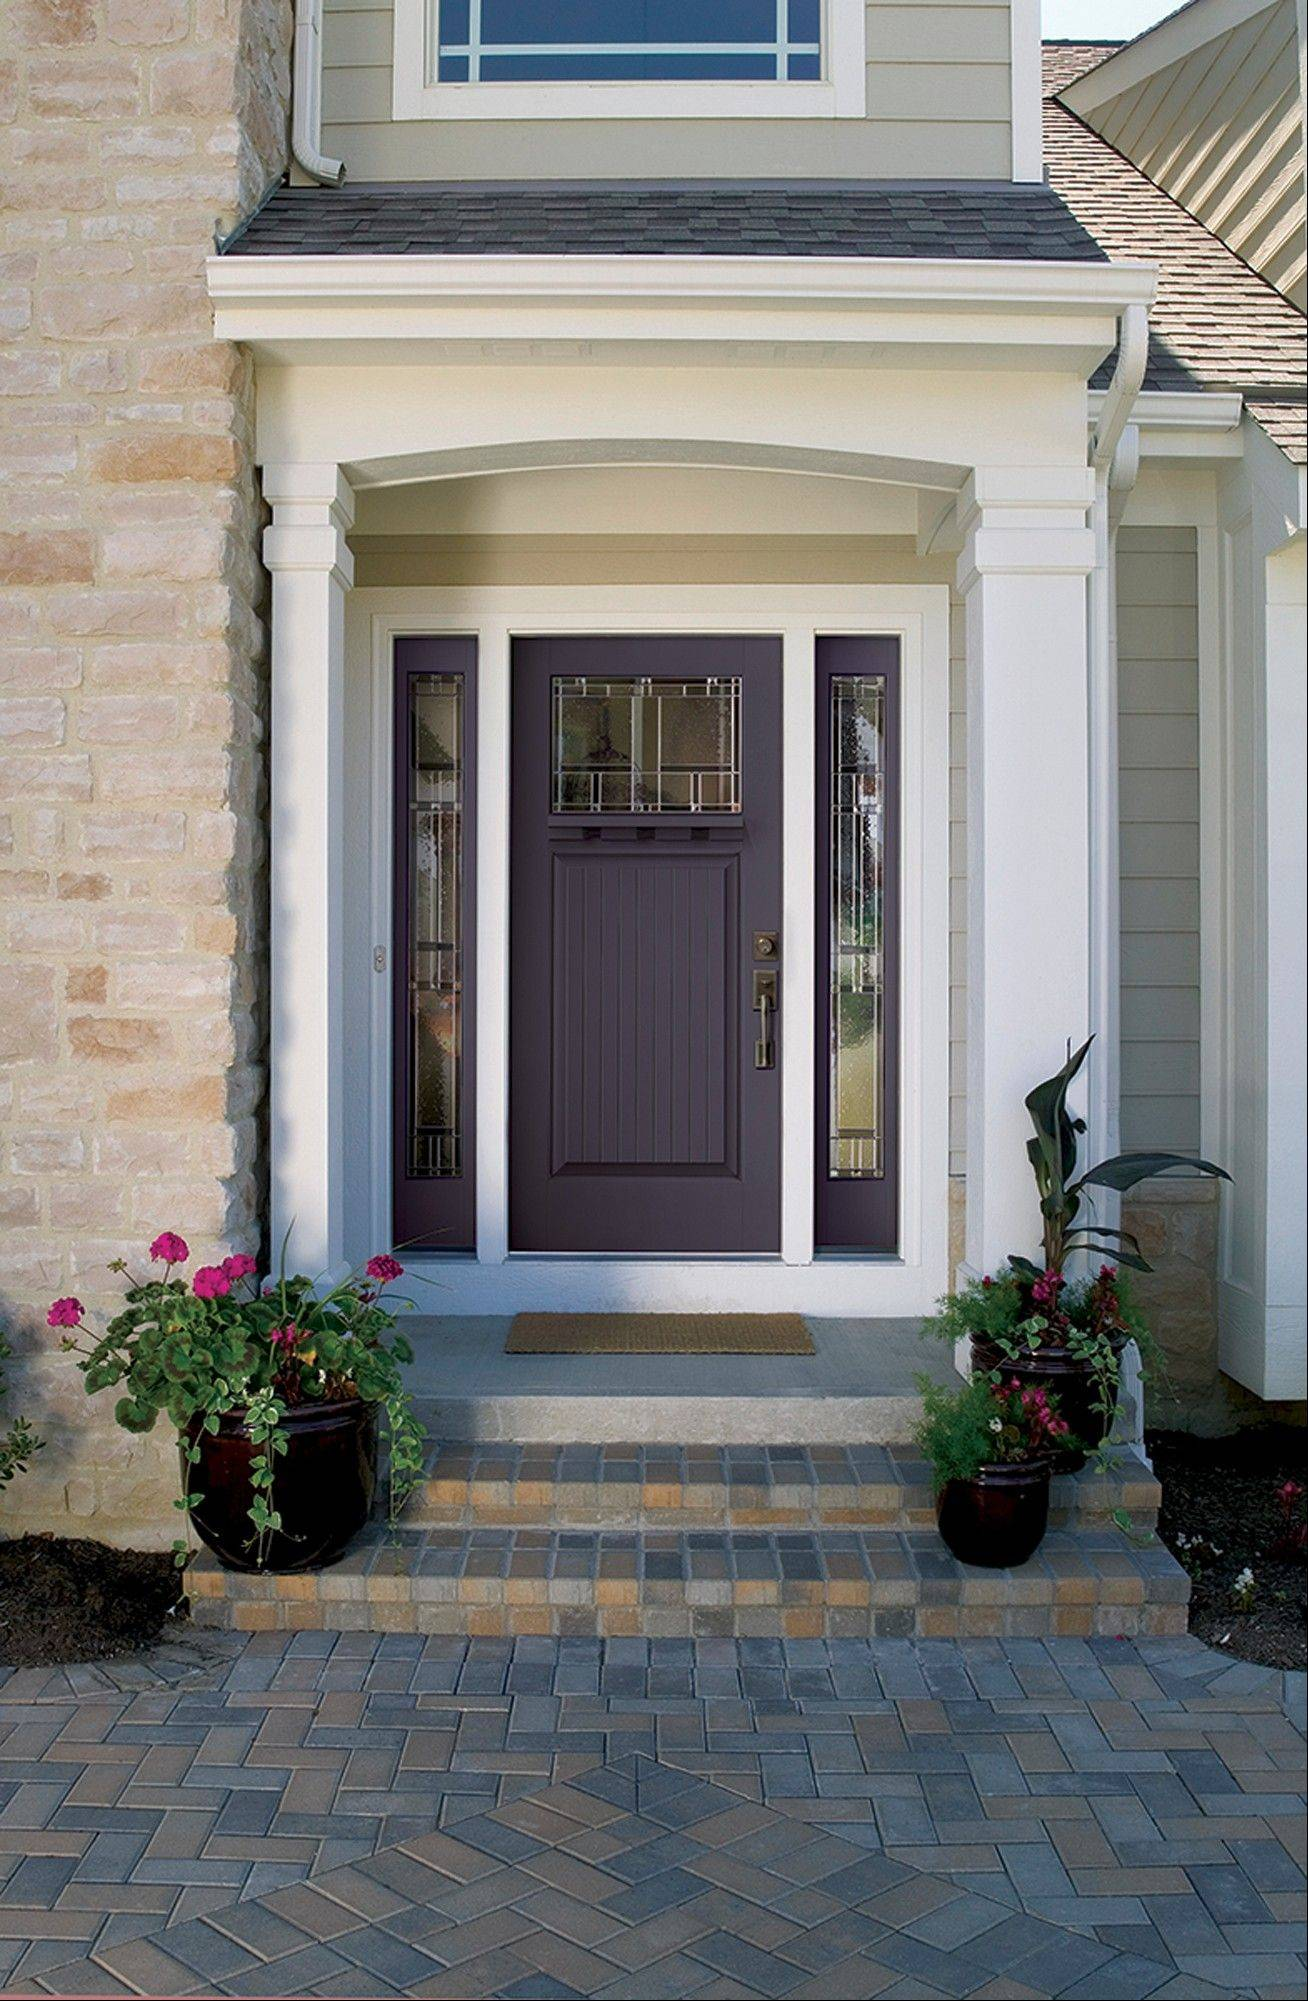 A quixotic plum front door with homeward glass. Color expert Kate Smith predicts we'll see more homes with doors painted in tropical blues, energetic oranges and deep purples in 2014.